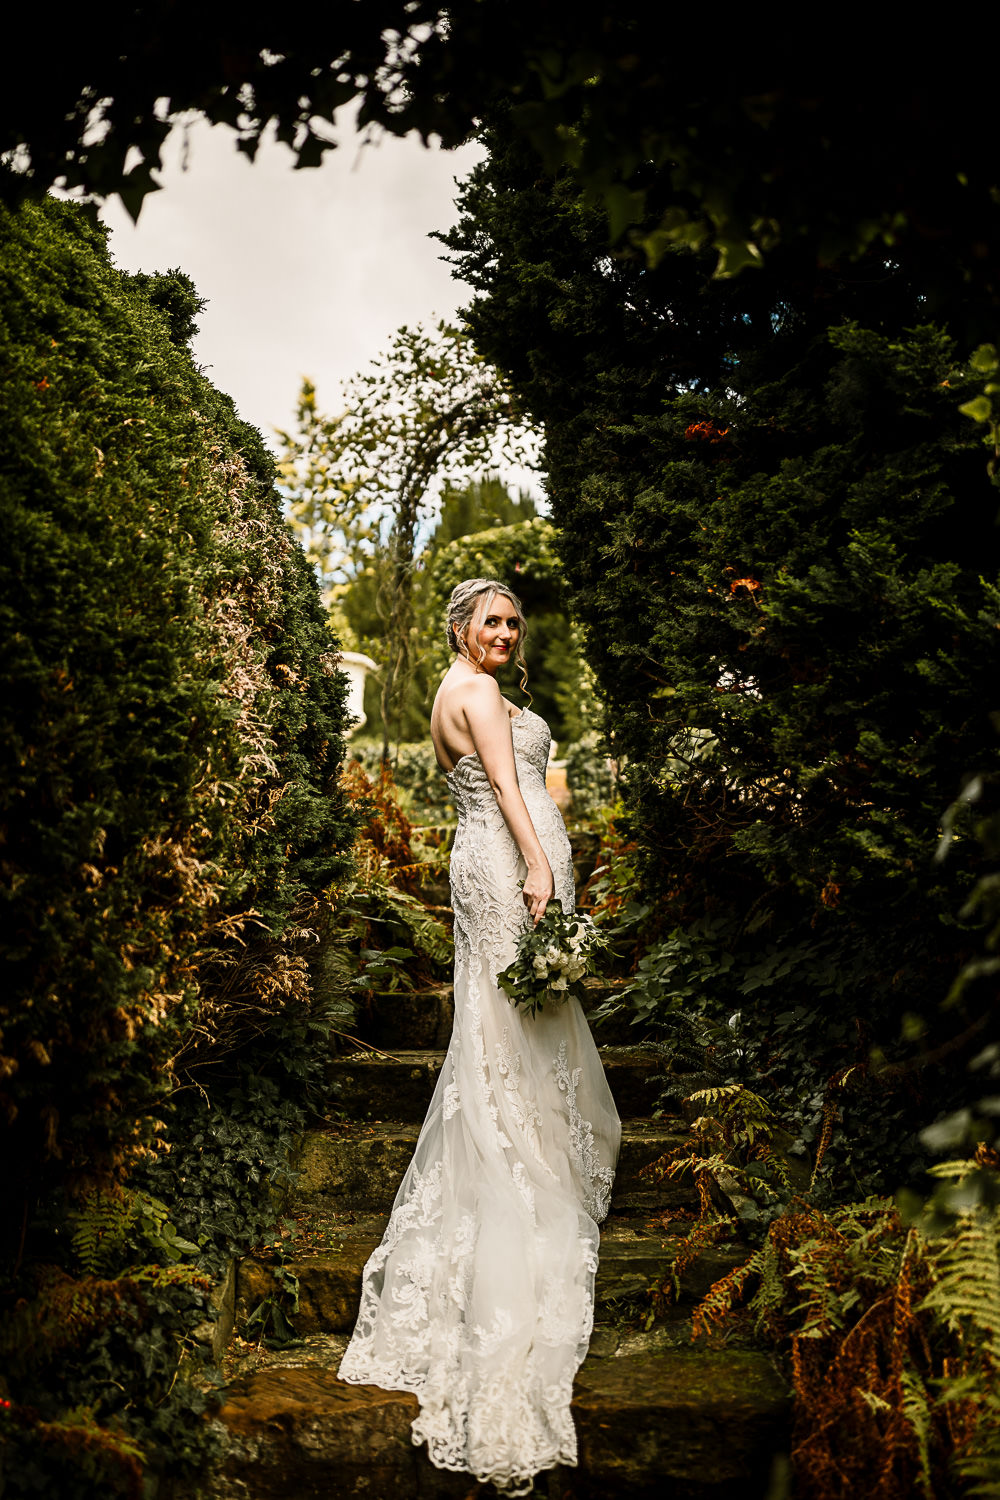 Bride Bridal Dress Gown Sweetheart Neckline Lace Braided Up Do Plait Greenery White Rose Bouquet Crab and Lobster Wedding Hayley Baxter Photography